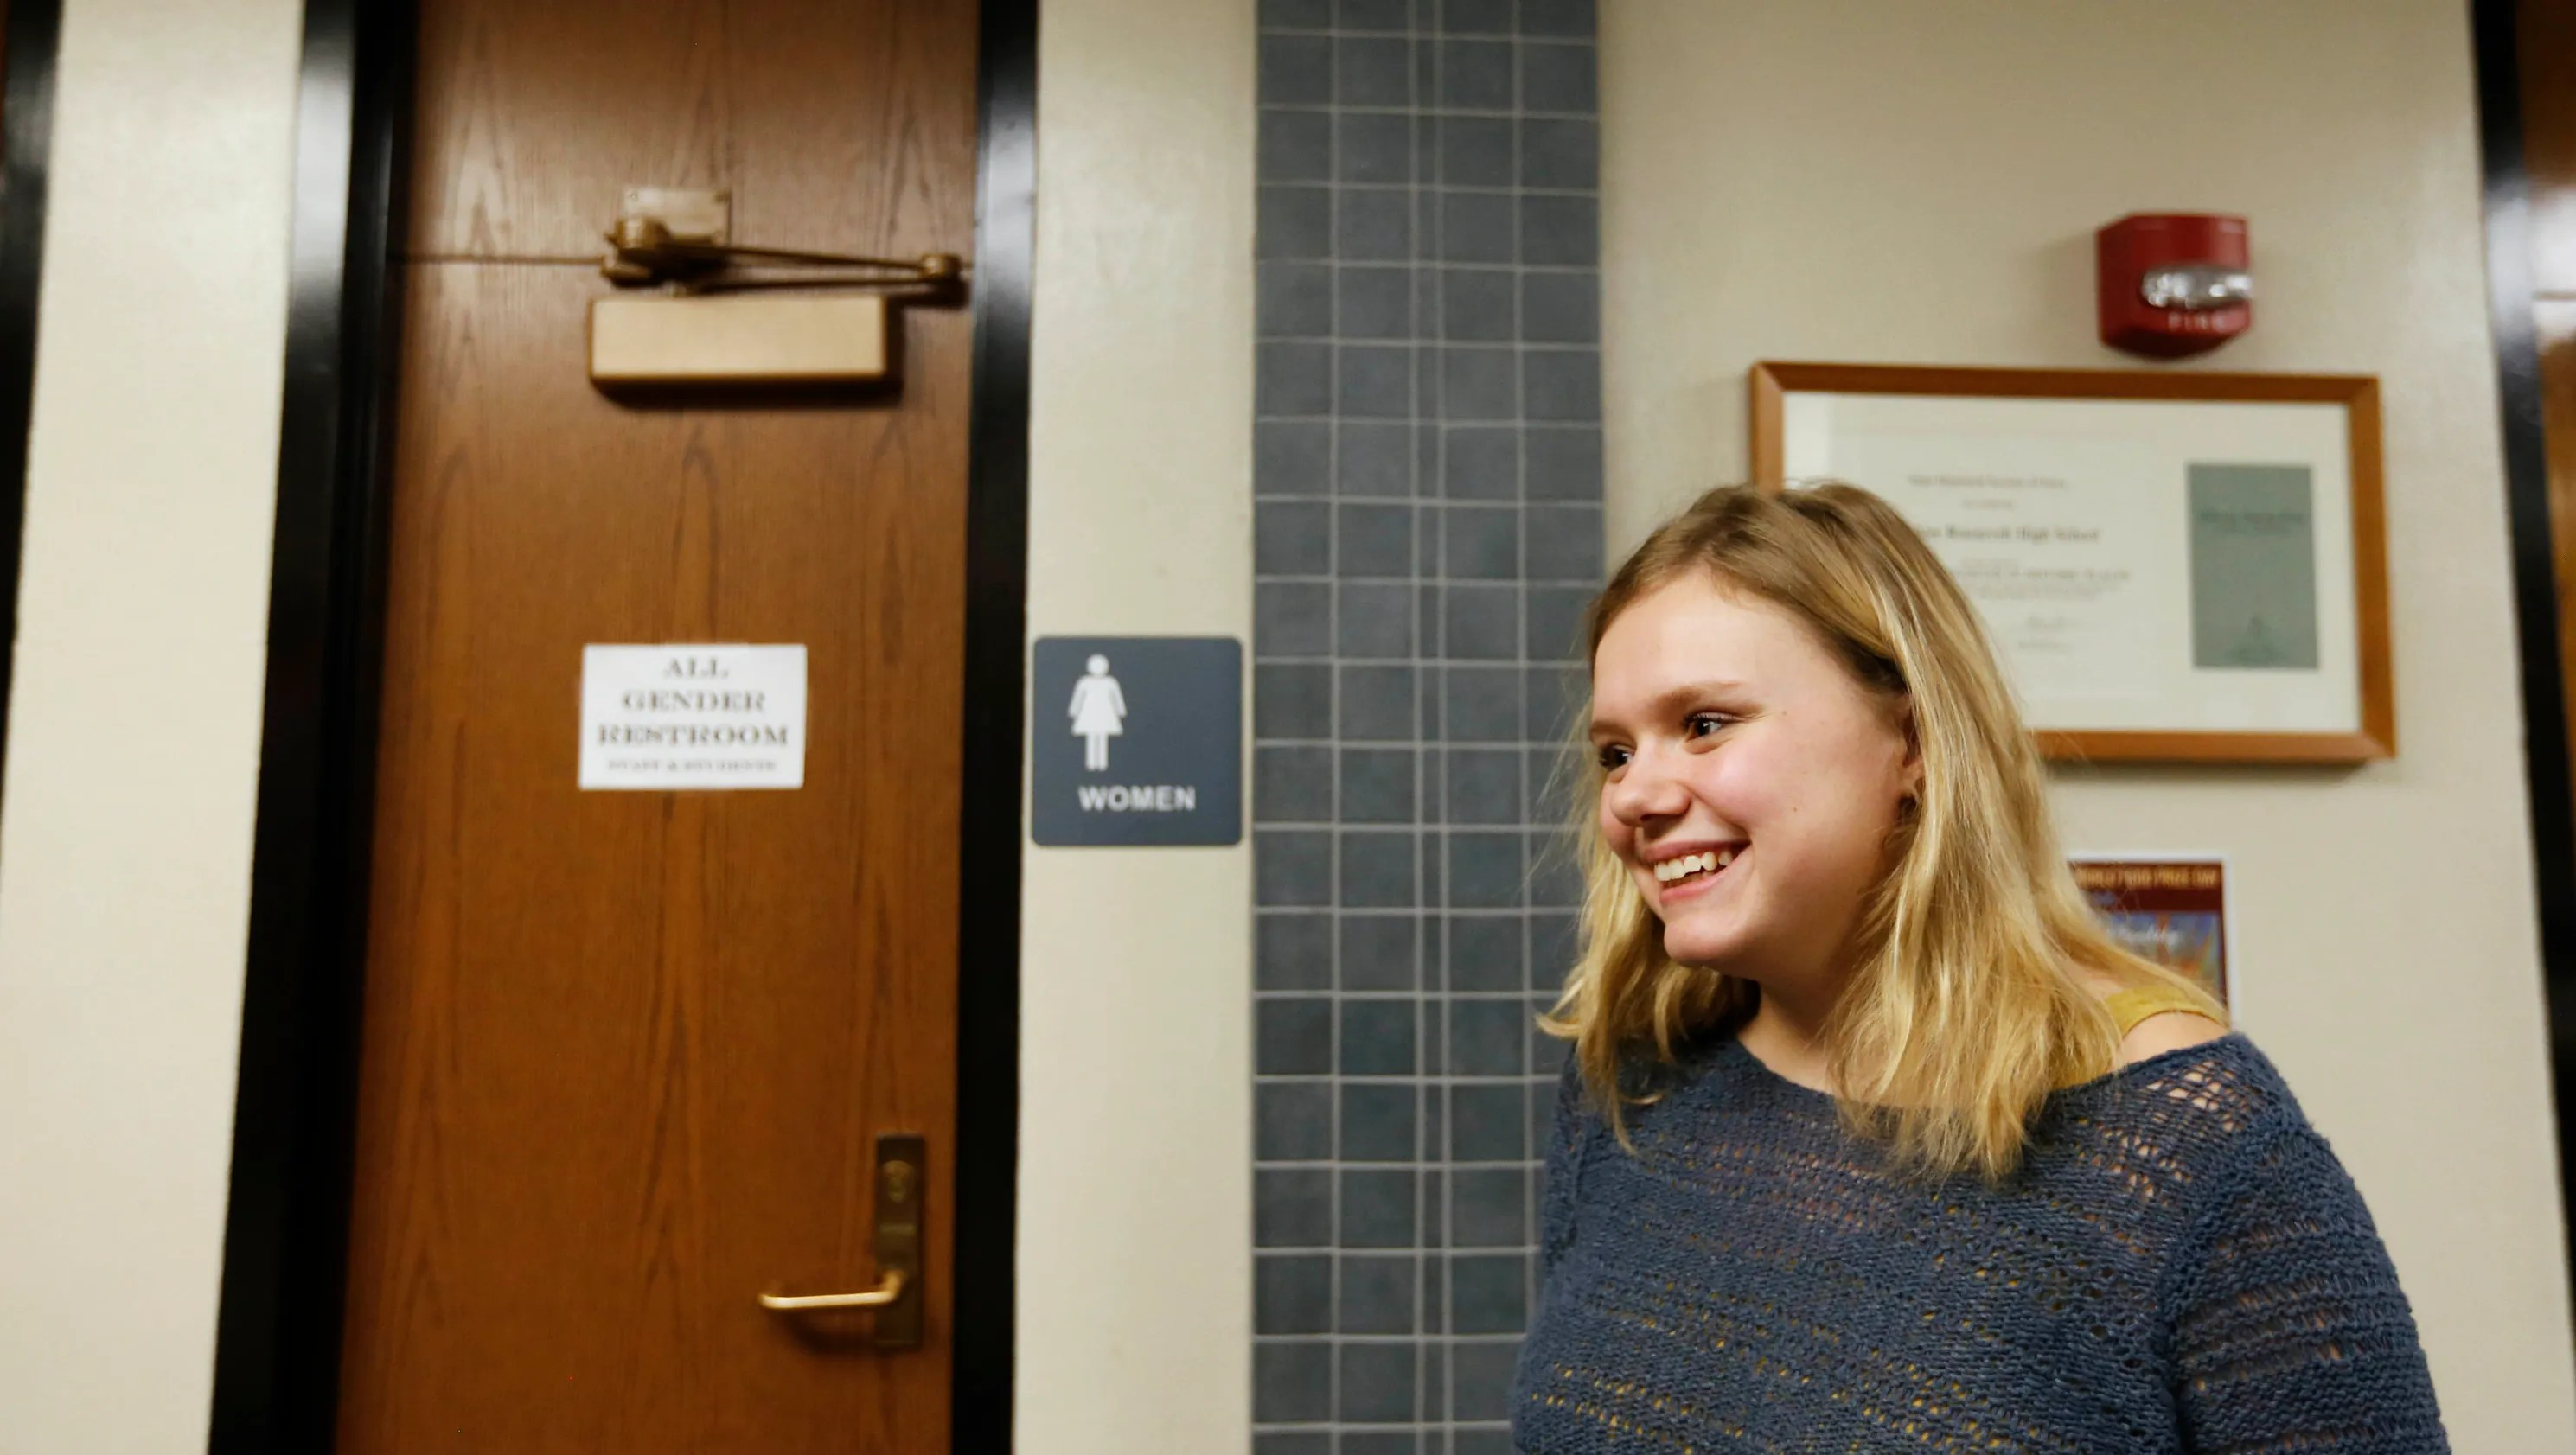 Student wants genderneutral bathrooms at all Des Moines